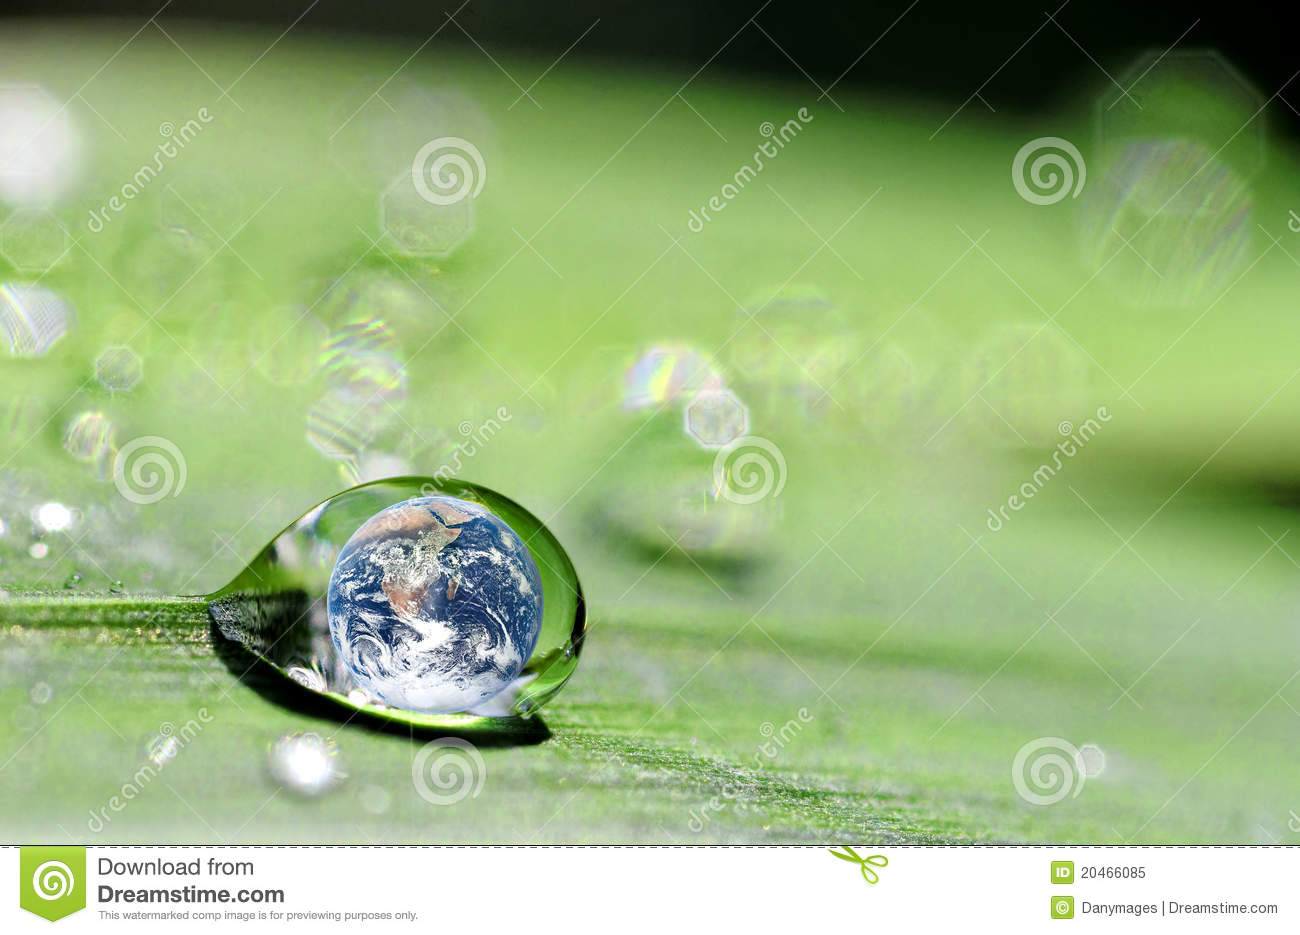 Drop and earth